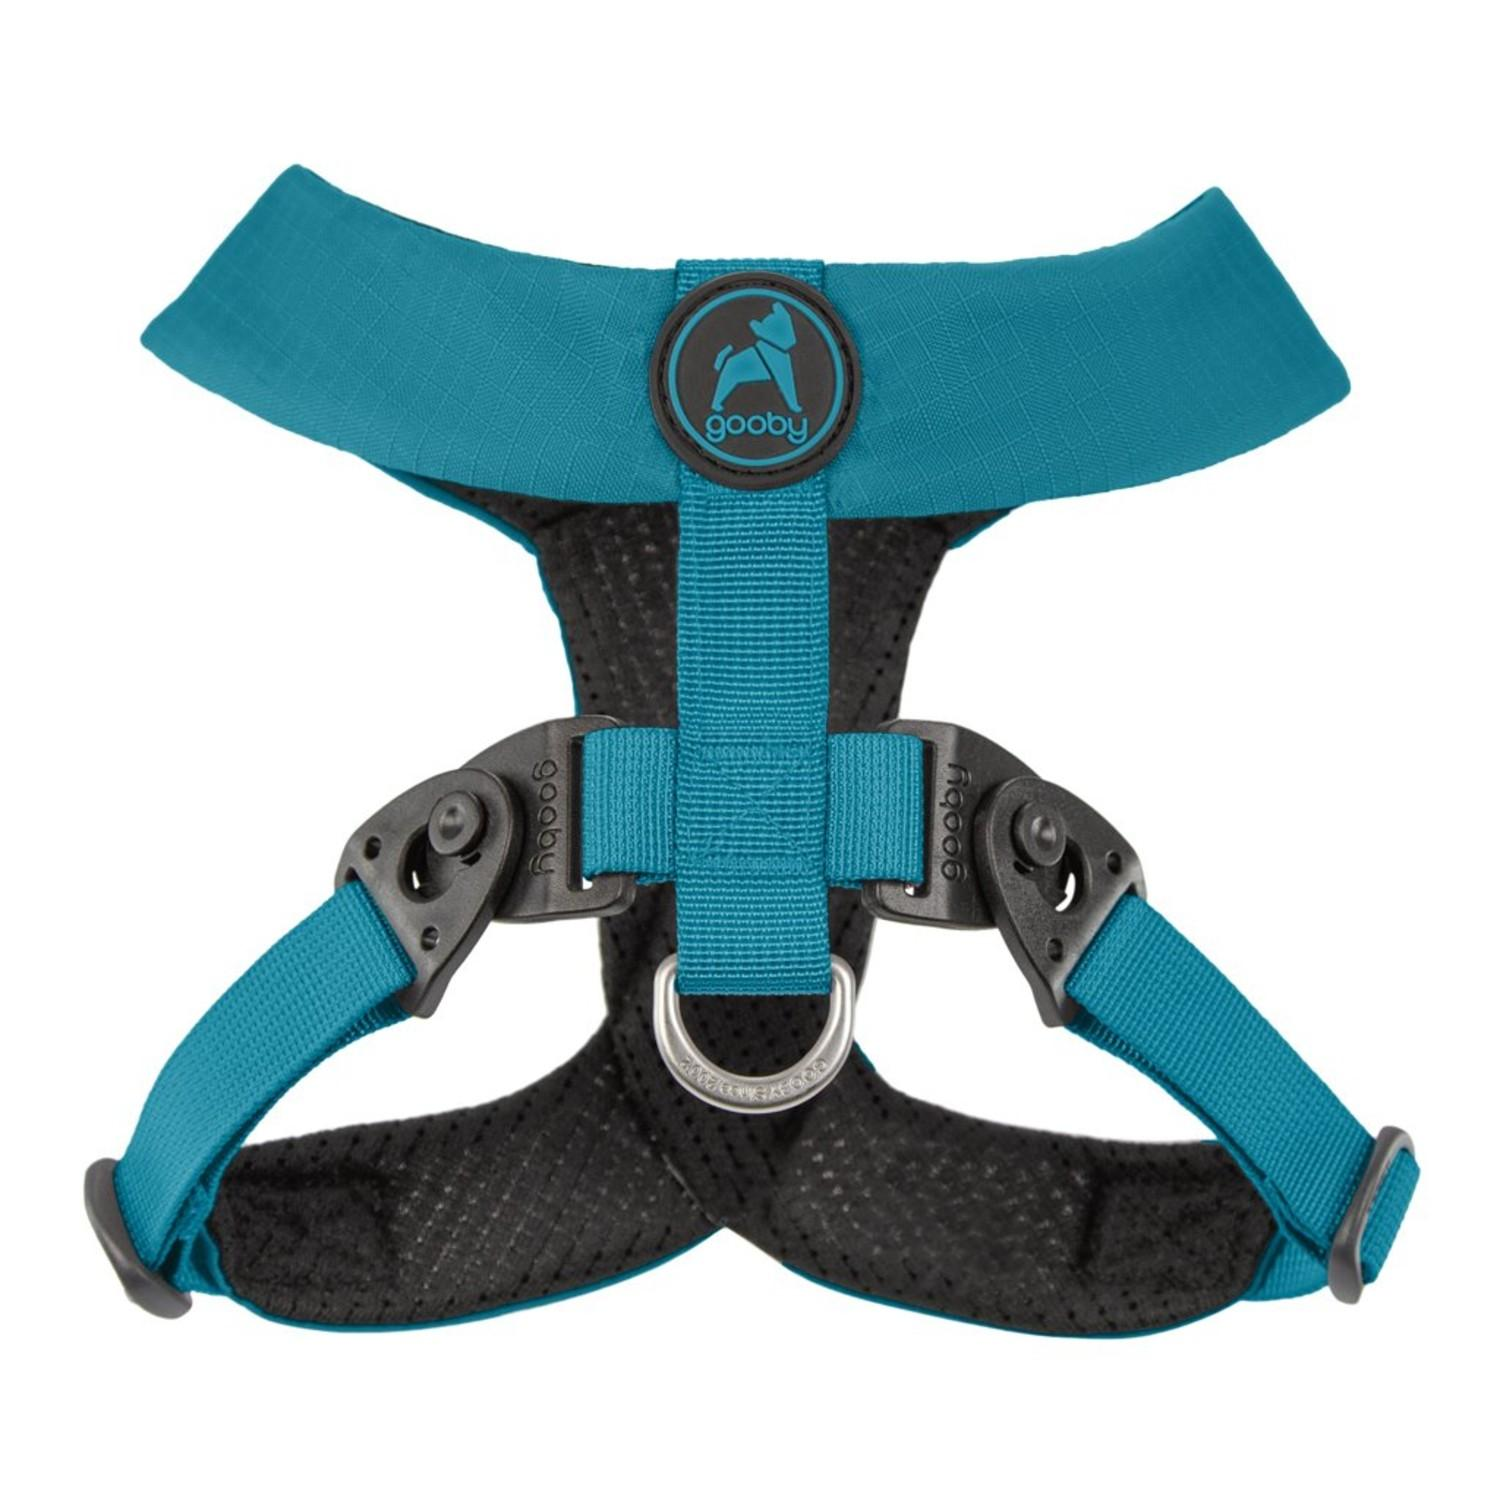 Gooby Comfort X Dual Snap Dog Harness - Turquoise